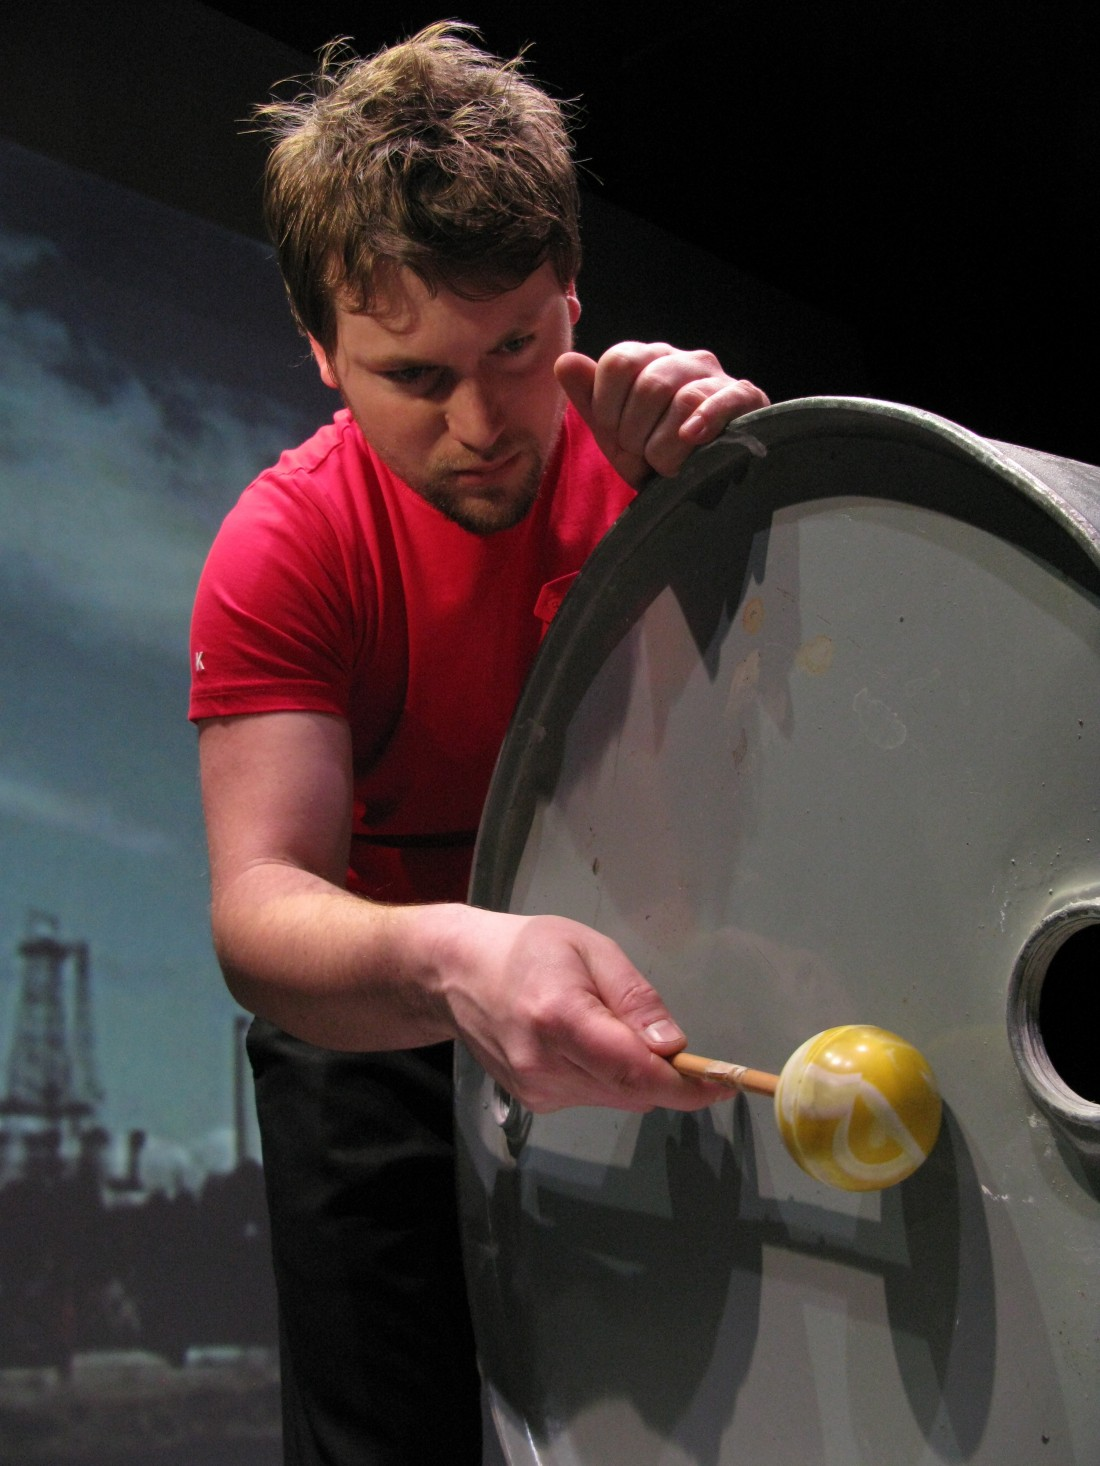 Internationally acclaimed percussionist Joby Burgess brings us Powerplant, an inspiring collaboration with sound designer Matthew Fairclough and filmmaker Kathy Hinde.